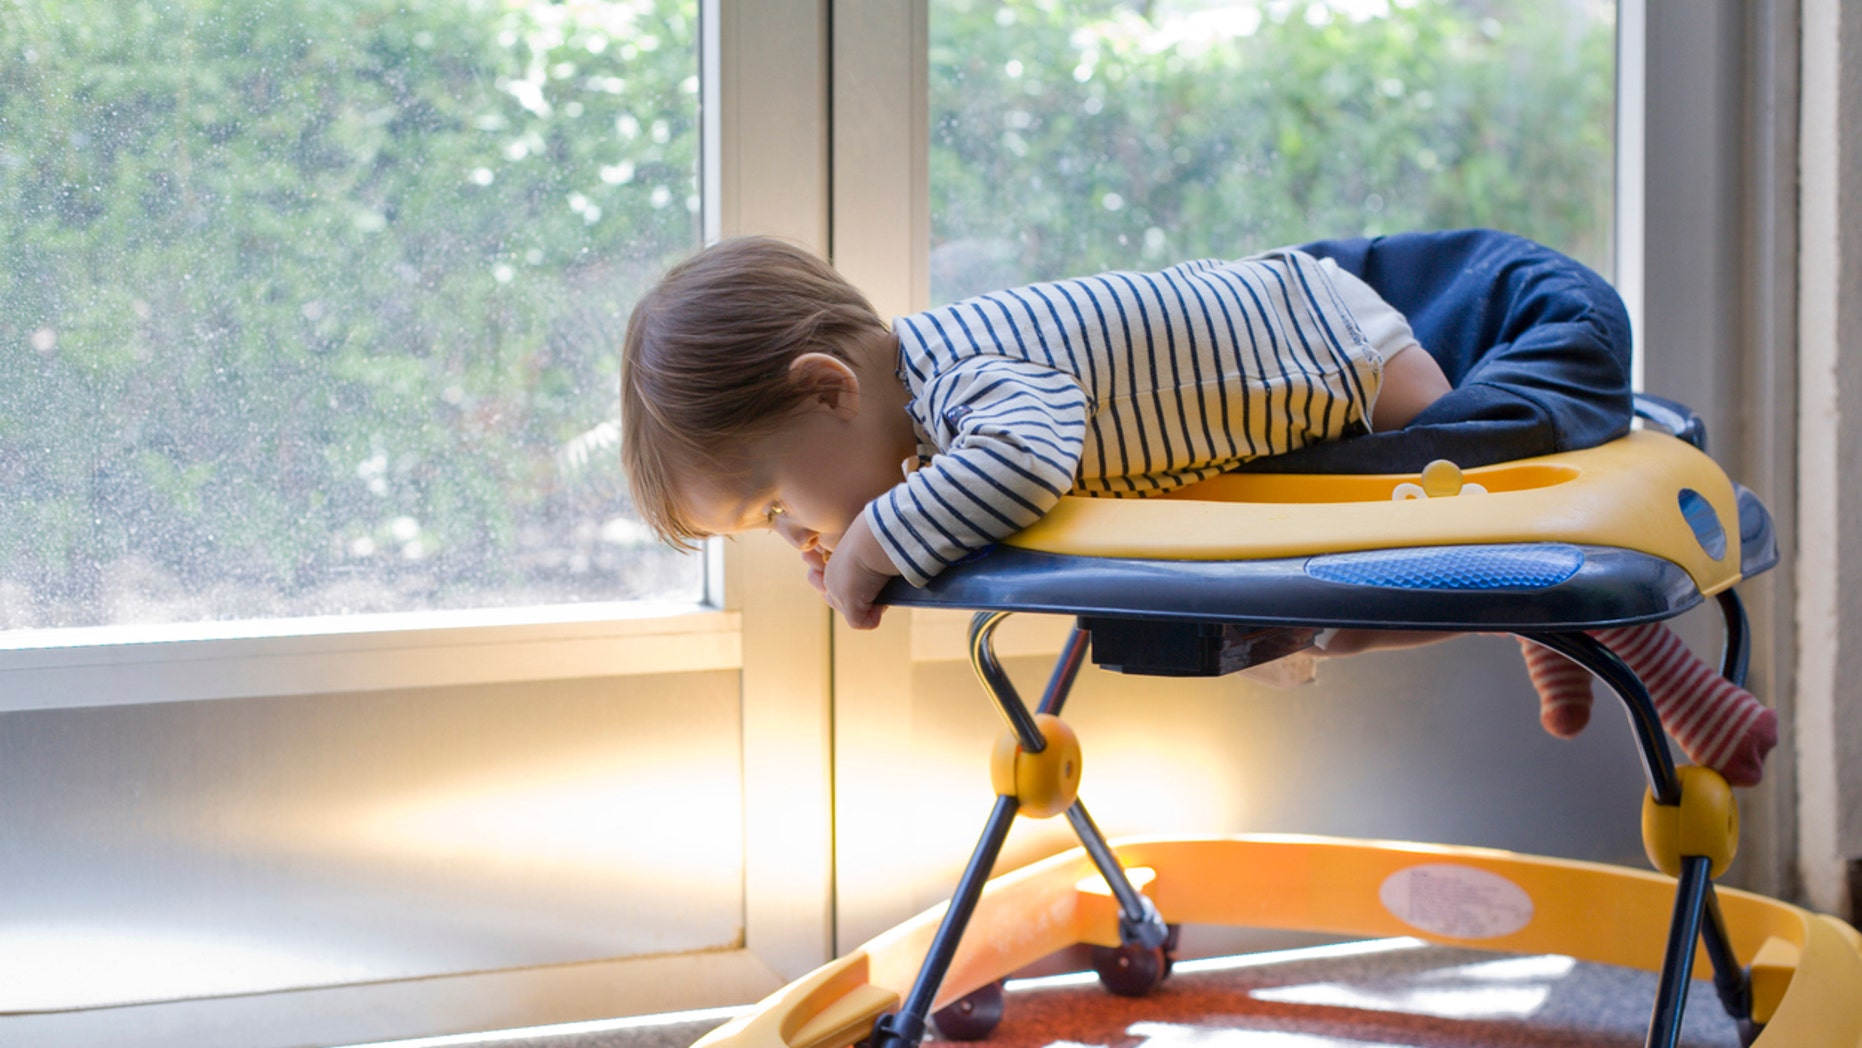 Between 1990 and 2014, there were 230,676 infant-walker related injuries in children younger than 15 months, researchers estimate based on data from the National Electronic Injury Surveillance System.